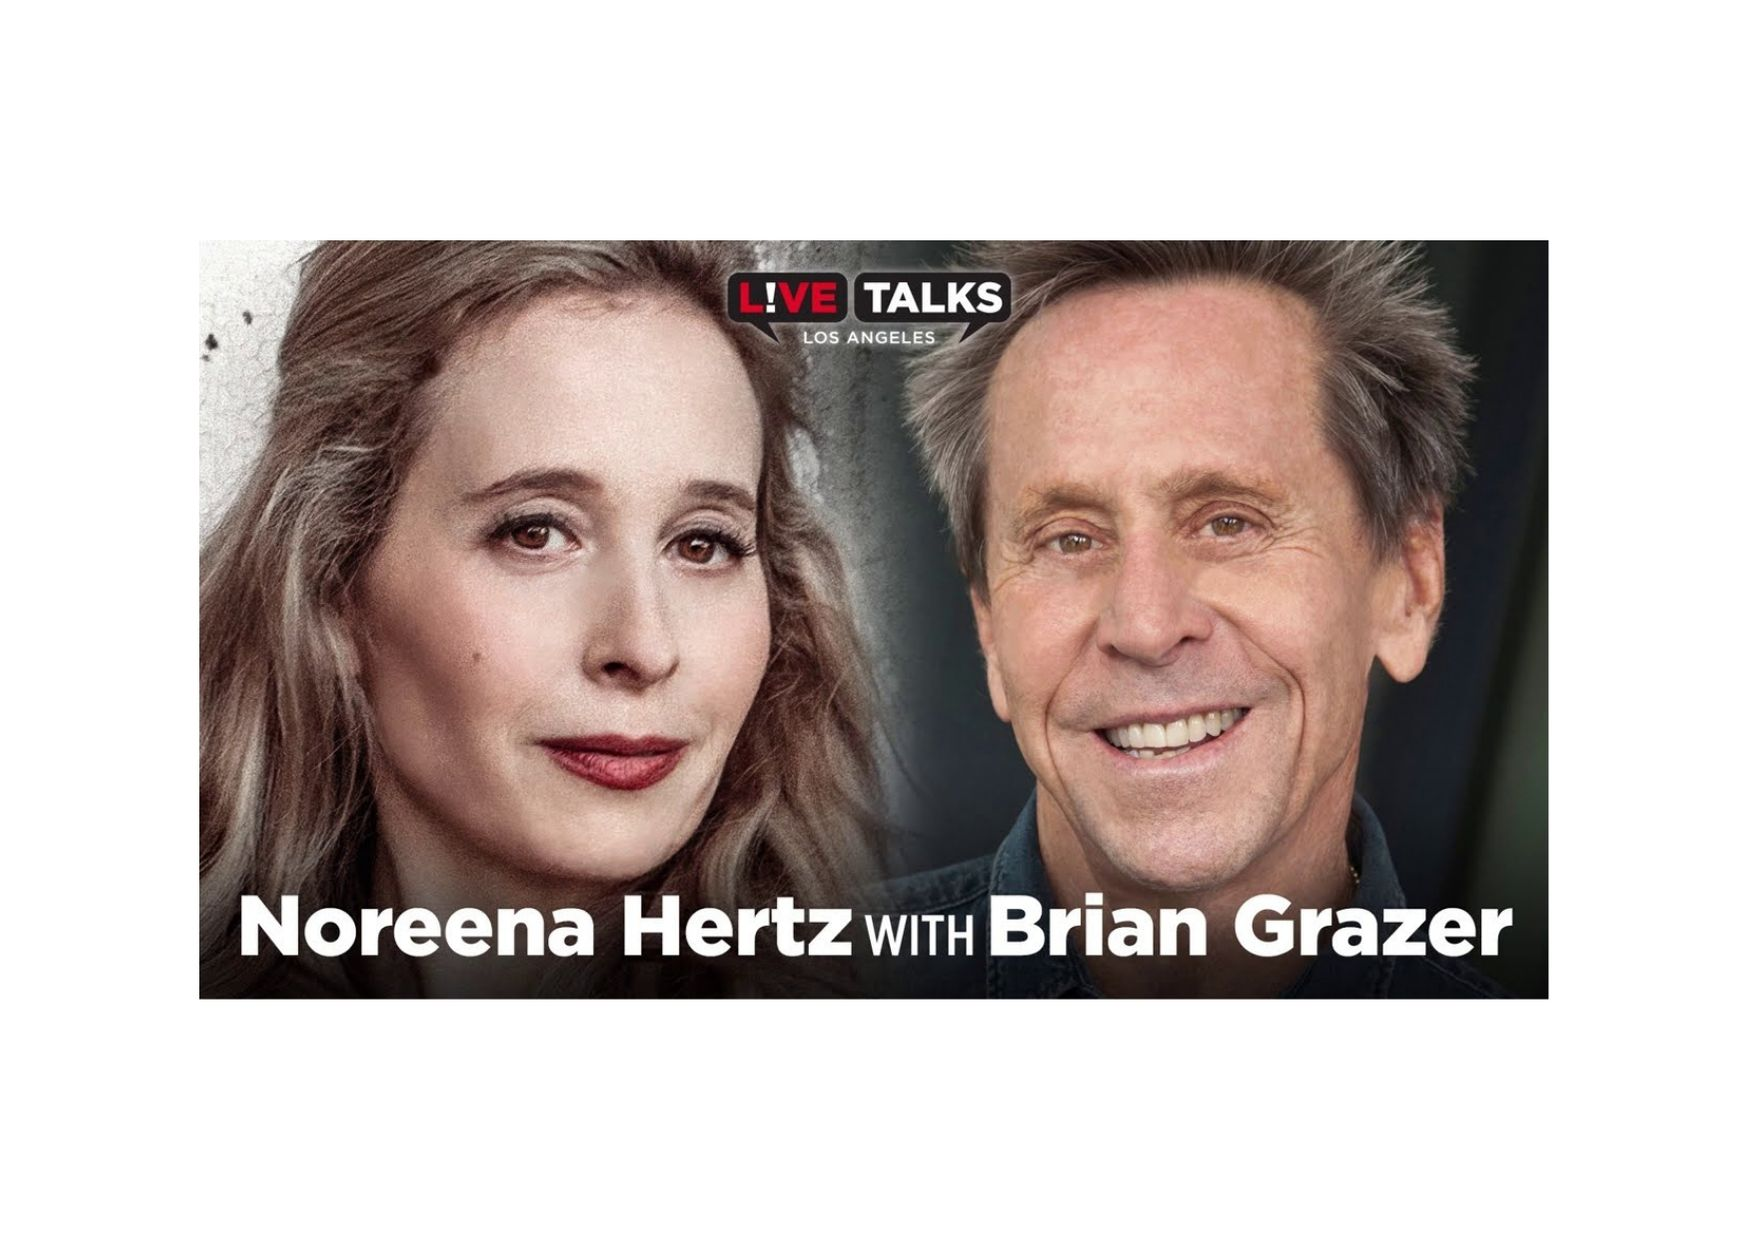 Noreena in conversation with Brian Grazer at Live Talks Los Angeles